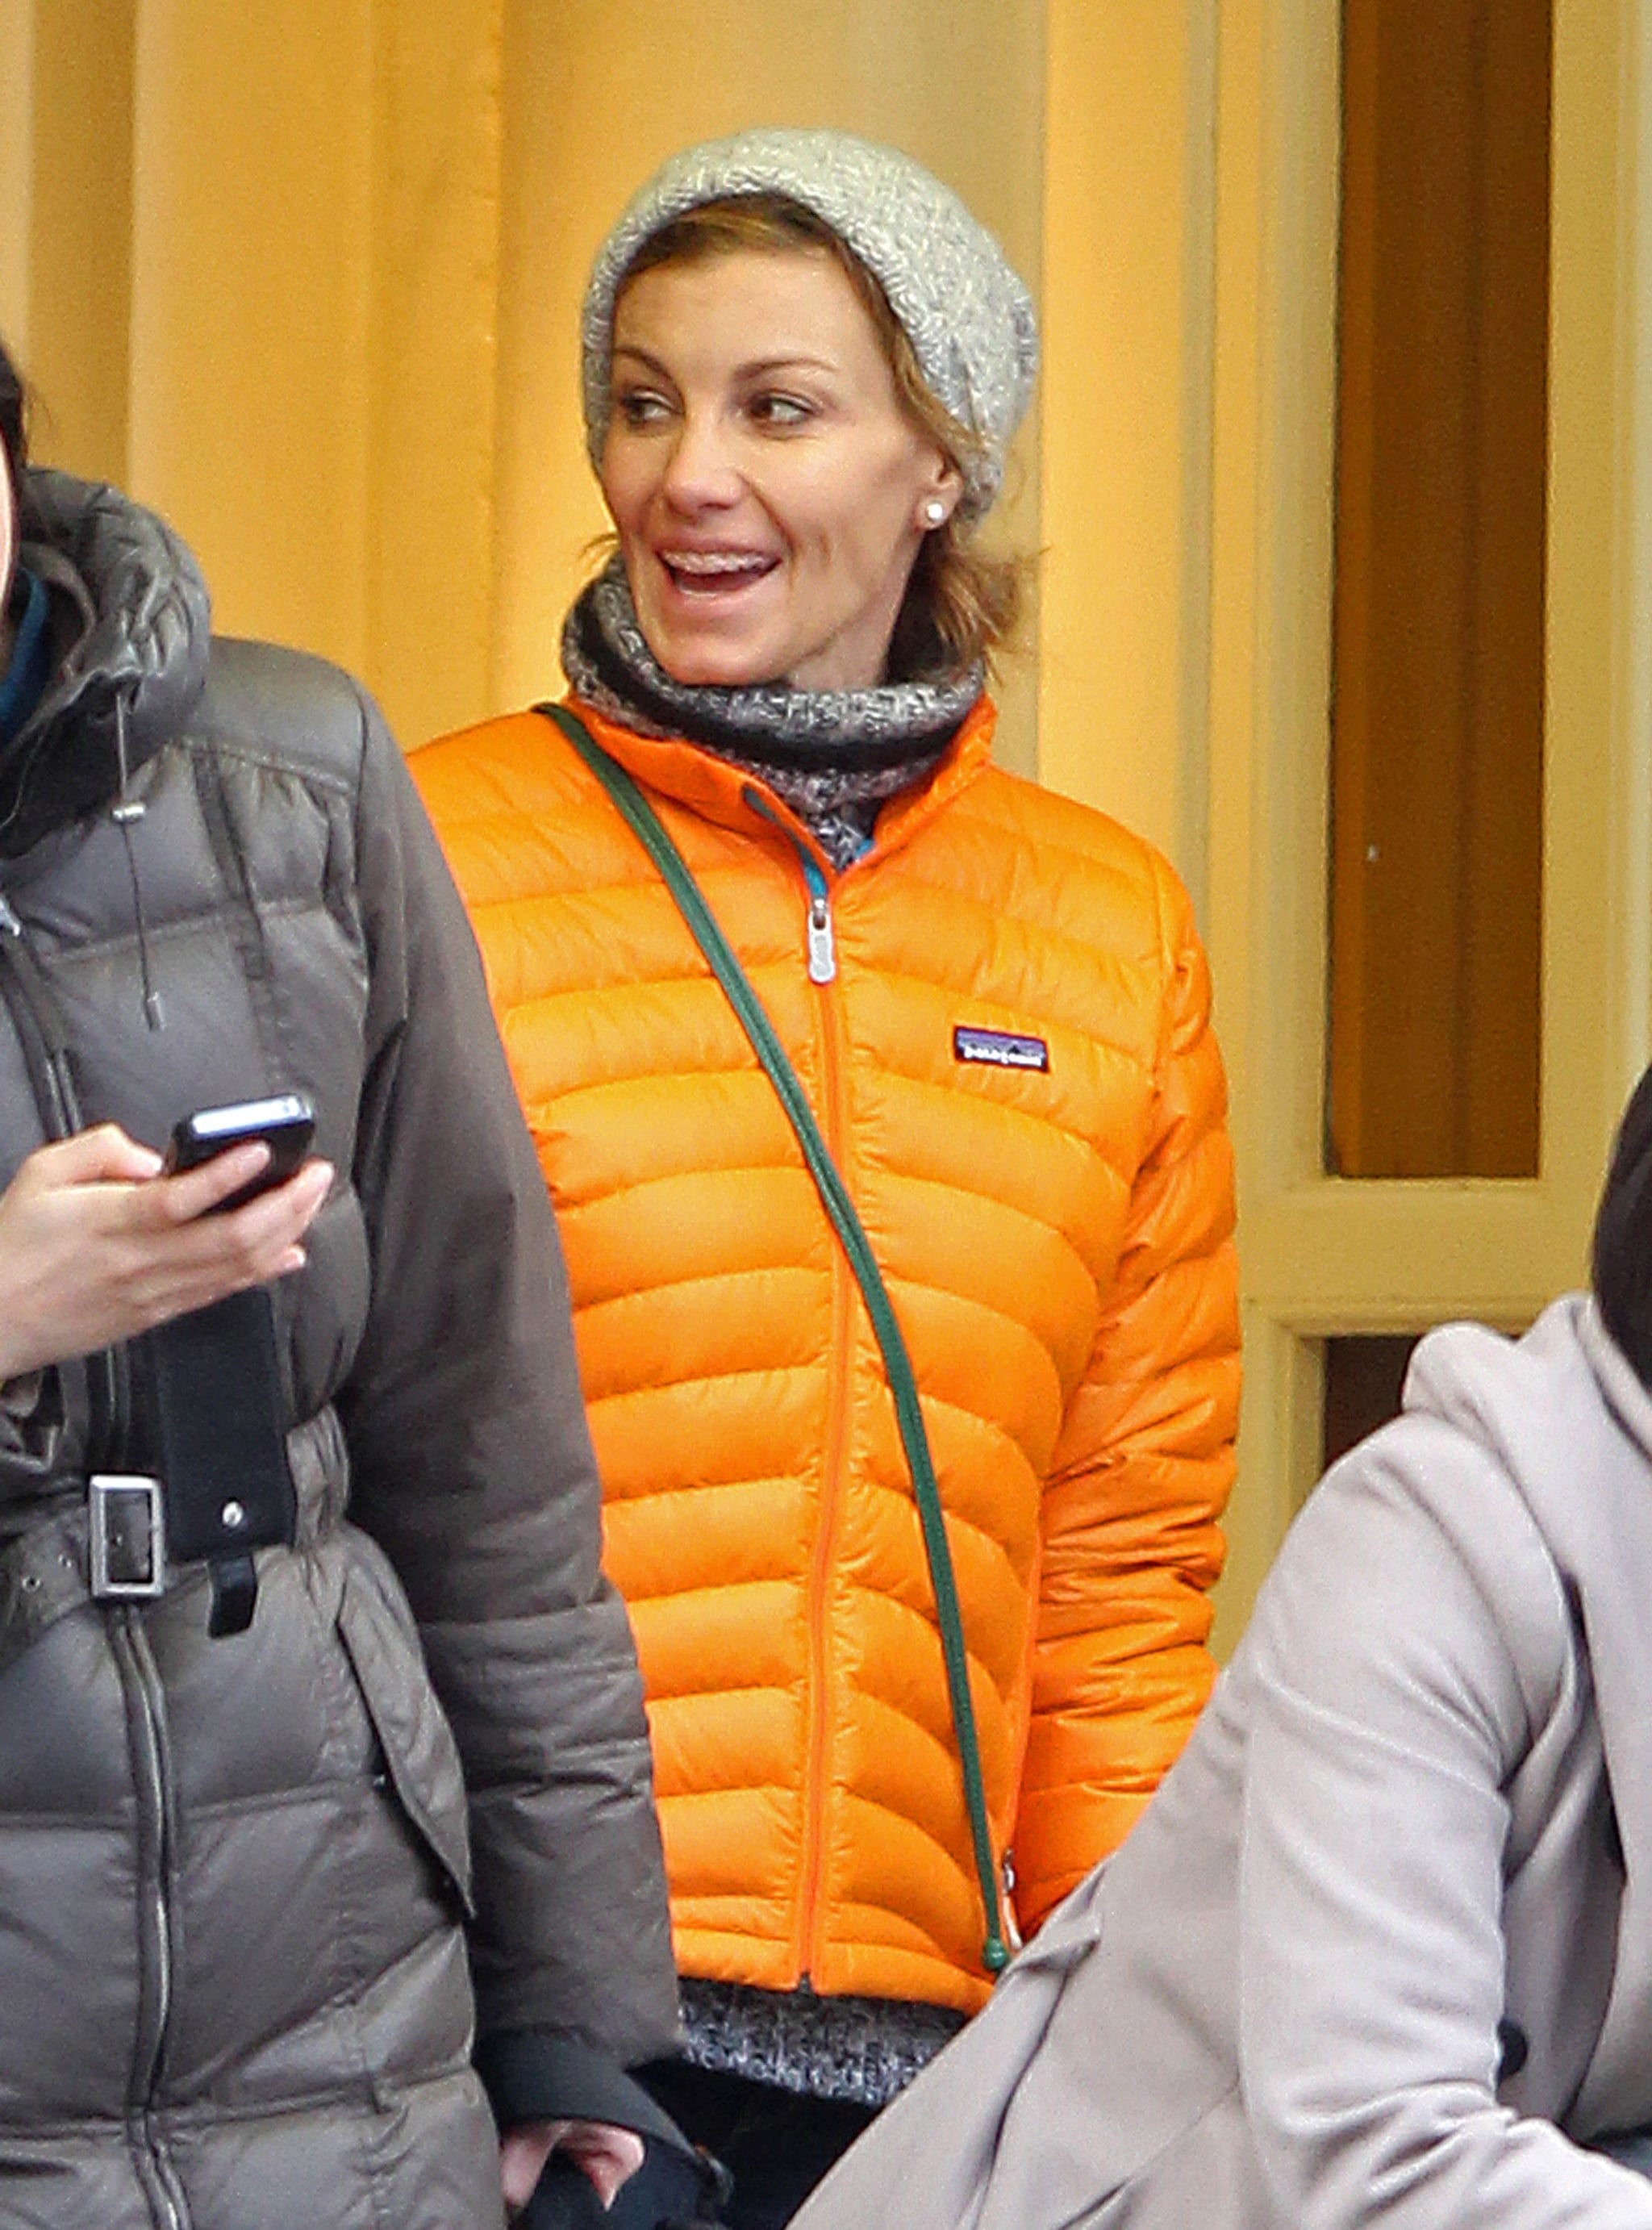 Faith Hill kept warm with a puffy orange jacket in London.